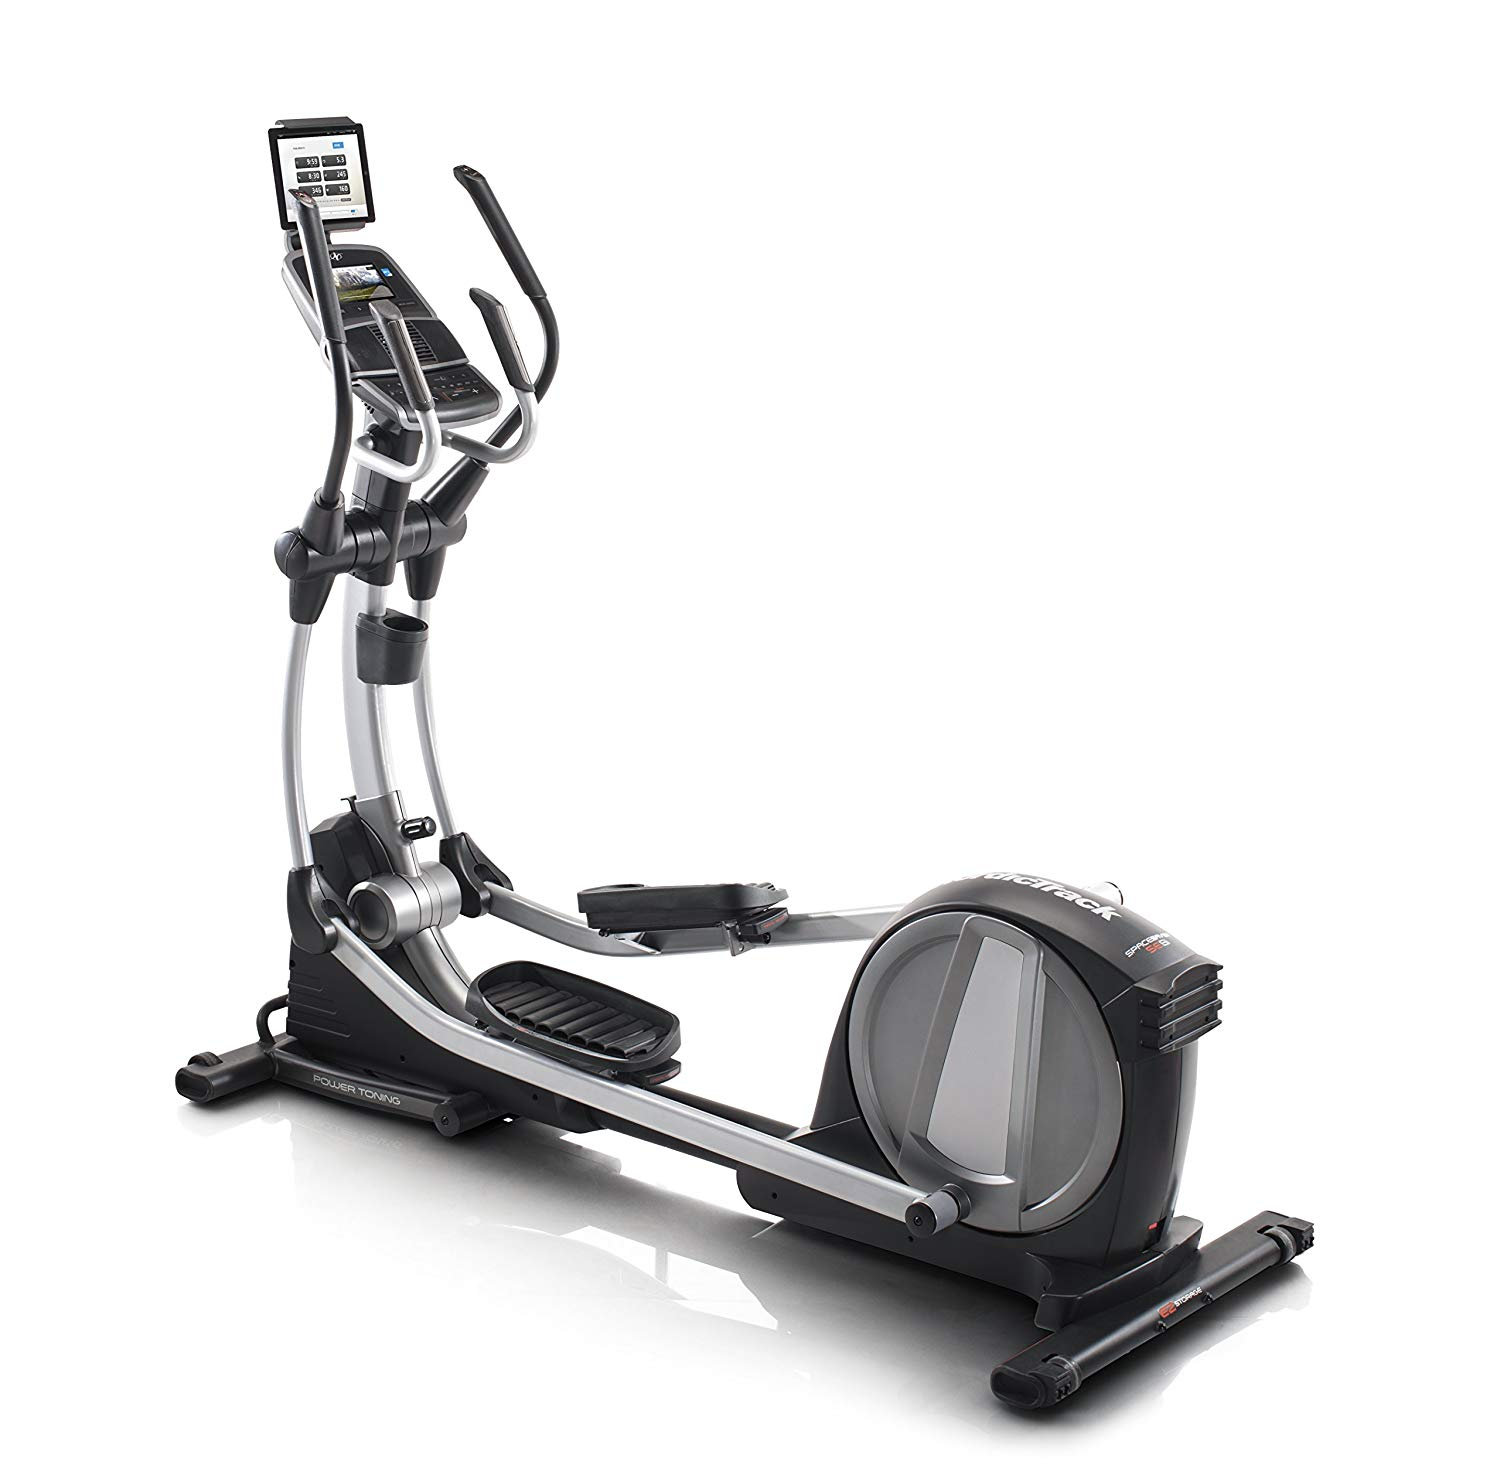 NordicTrack Spacesaver SE9i Elliptical Trainer- Elliptical